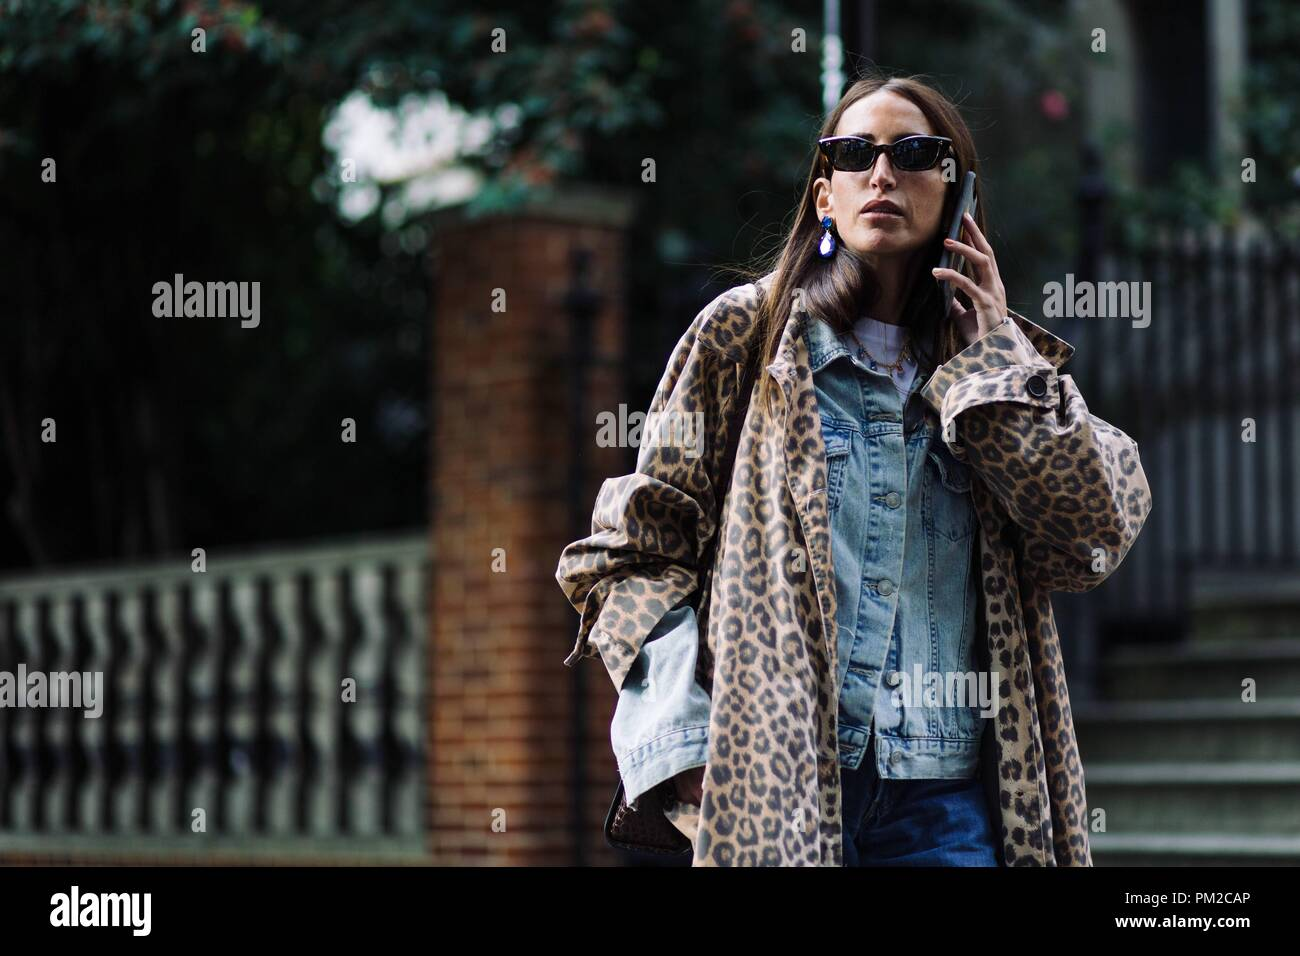 Loulou De Saison posing outside the Preen by Thornton Bregazzi runway show during London Fashion Week - Sept 16, 2018 - Photo: Runway Manhattan ***For Editorial Use Only*** | usage worldwide - Stock Image